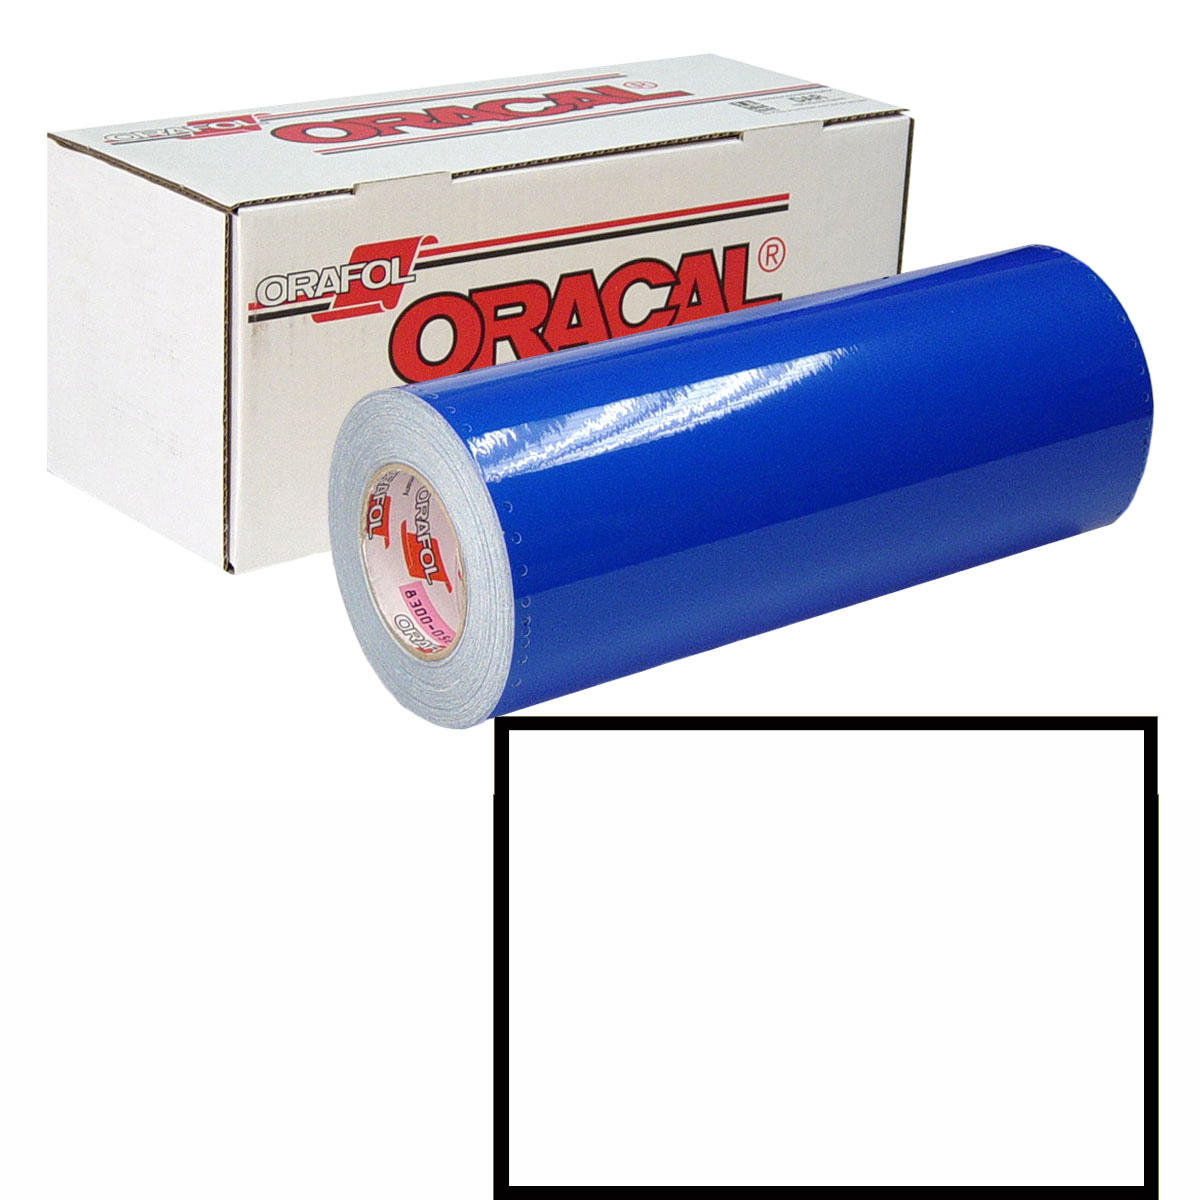 ORACAL 631 15in X 50yd 000 Transparent